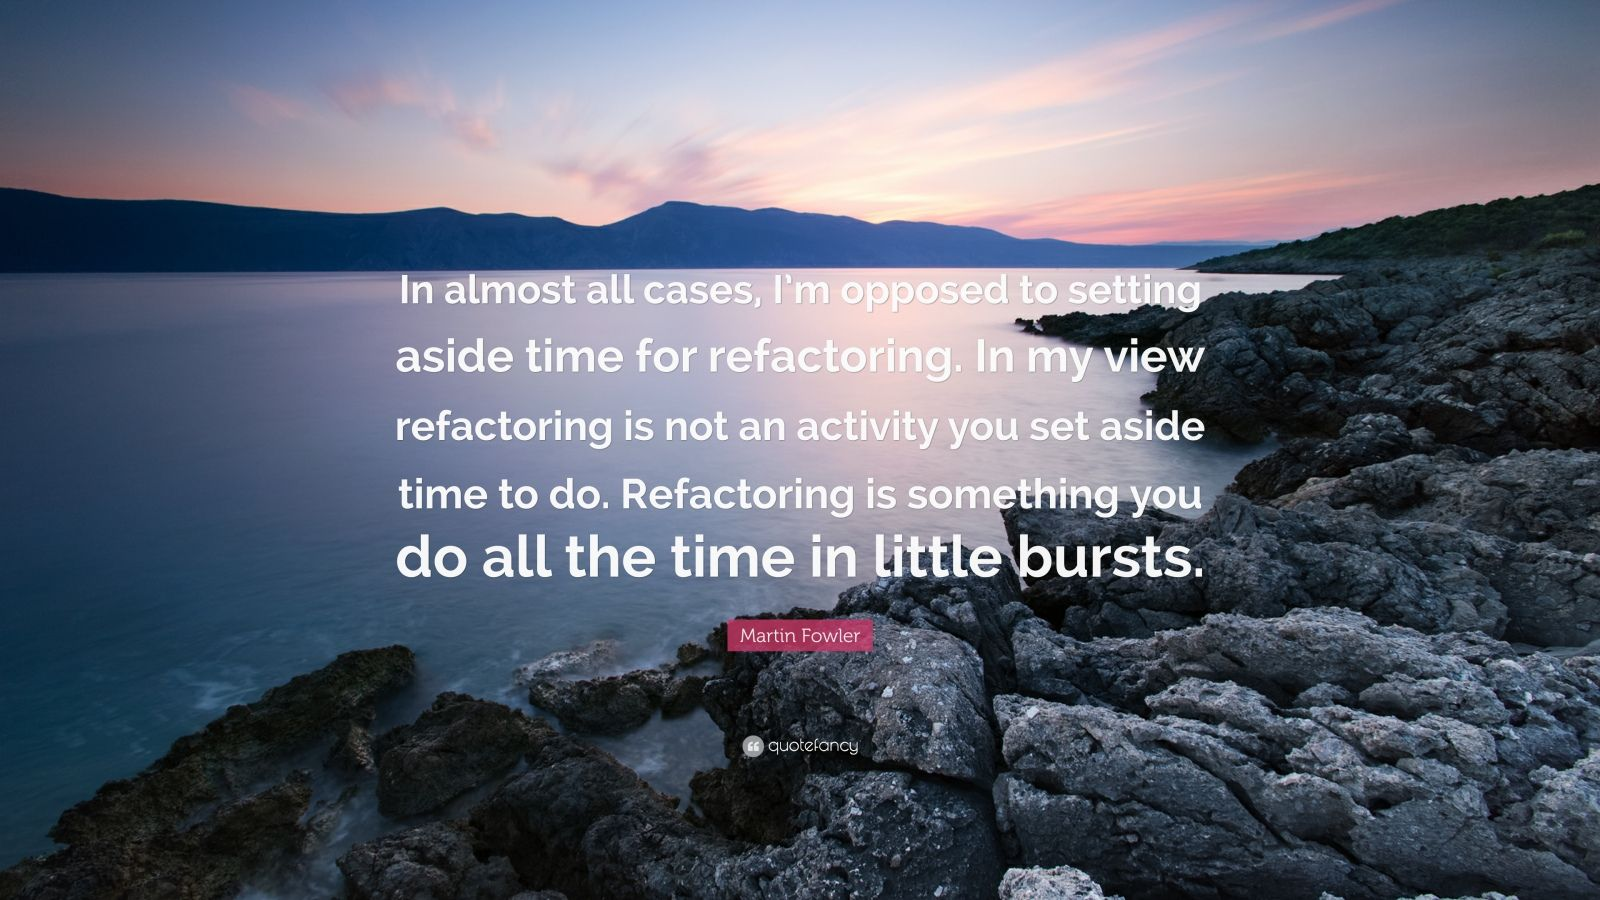 """Martin Fowler Quote: """"In almost all cases, I'm opposed to setting aside time for refactoring. In my view refactoring is not an activity you set aside time to do. Refactoring is something you do all the time in little bursts."""""""